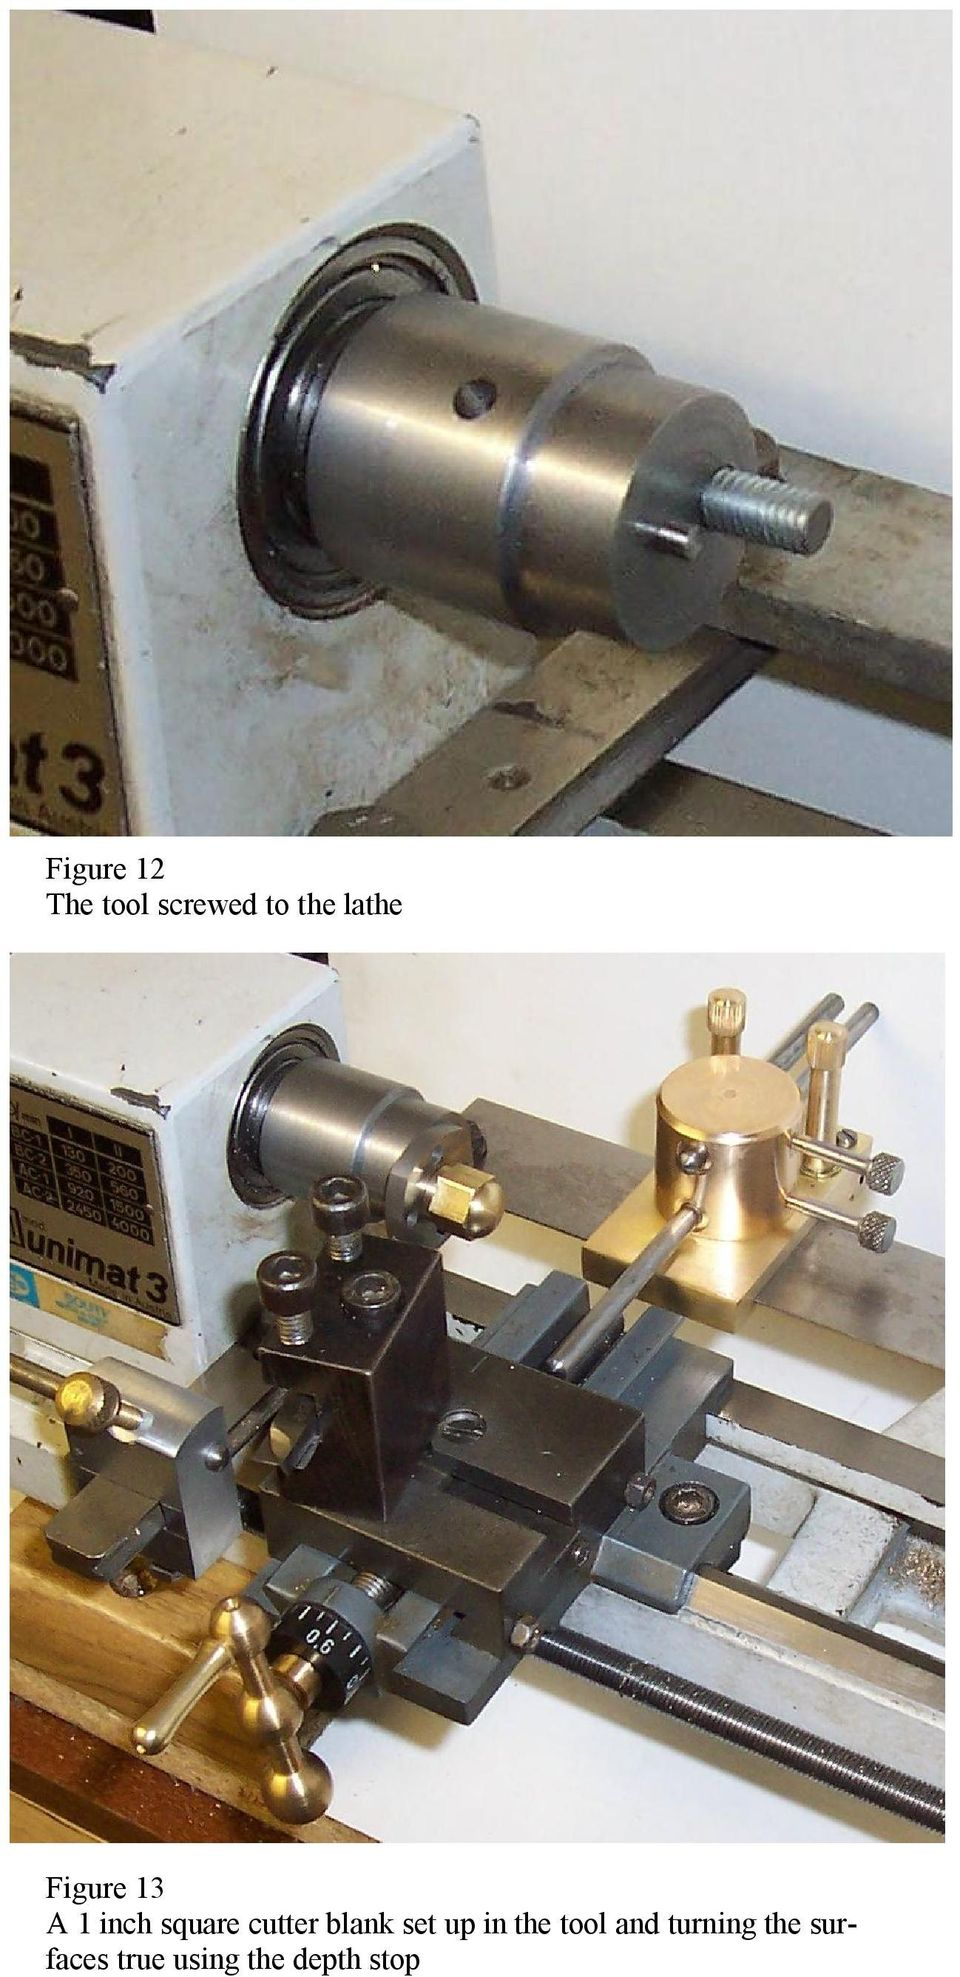 cutter blank set up in the tool and